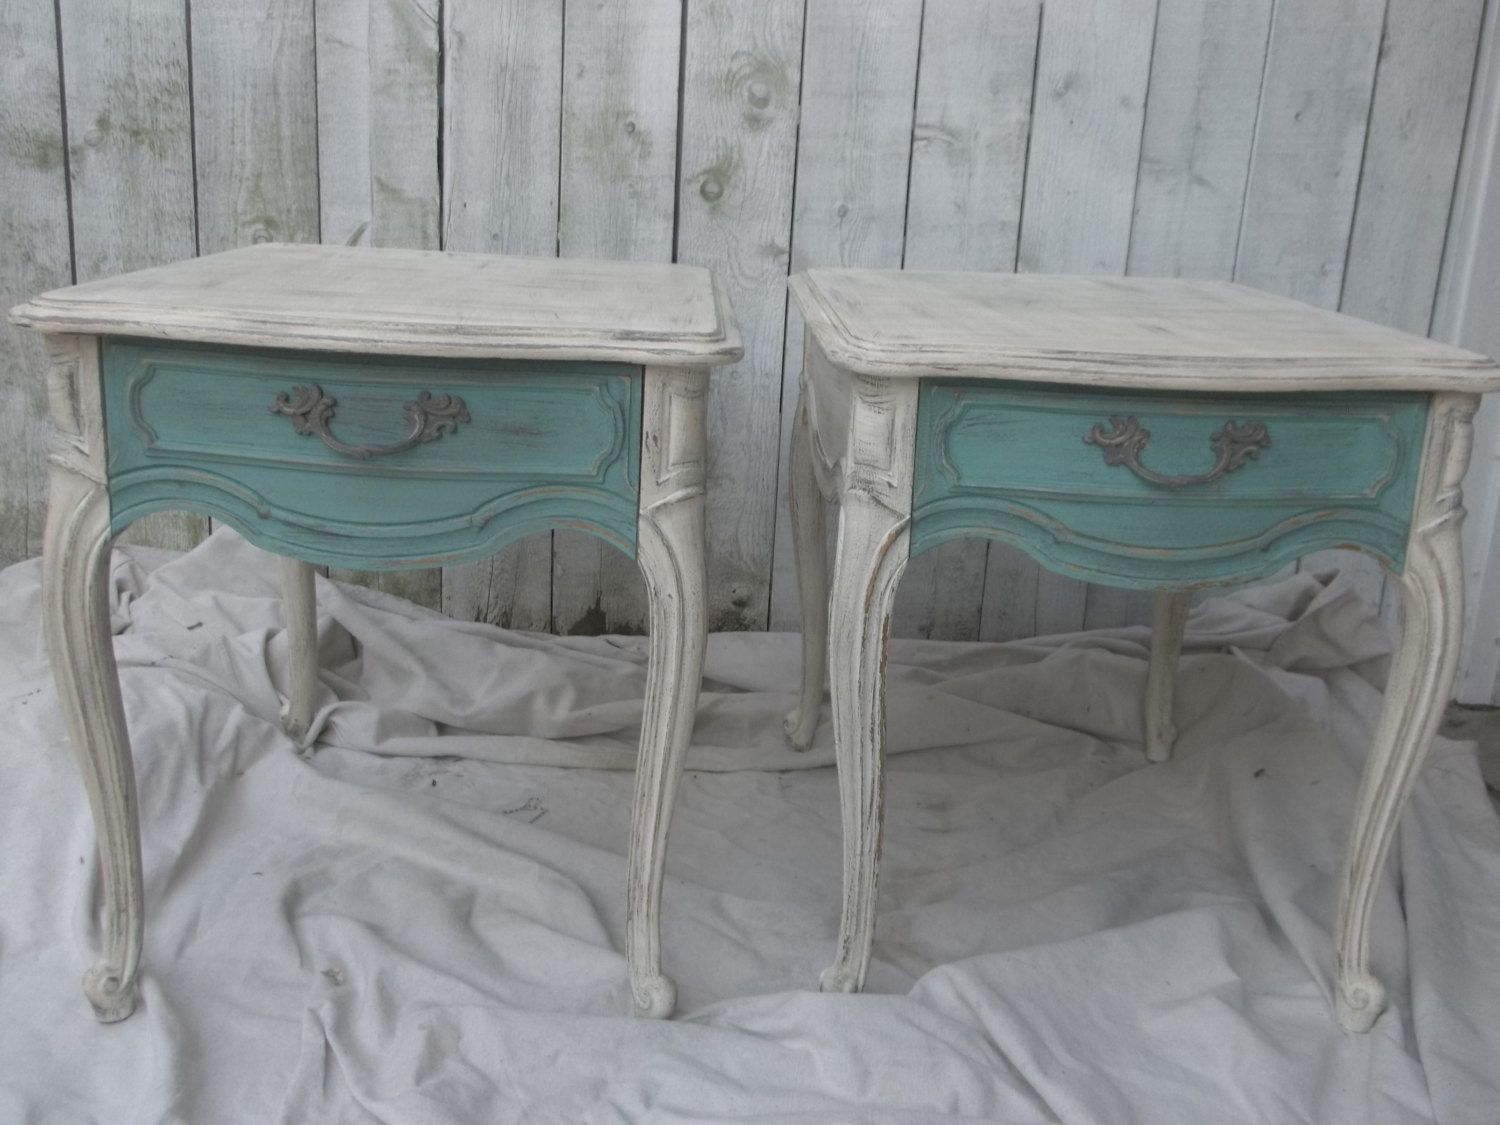 Shabby Chic End Tables Vintage Thomasville White Teal Distressed Rustic  Cottage Chic Square Tables Victorian Decor